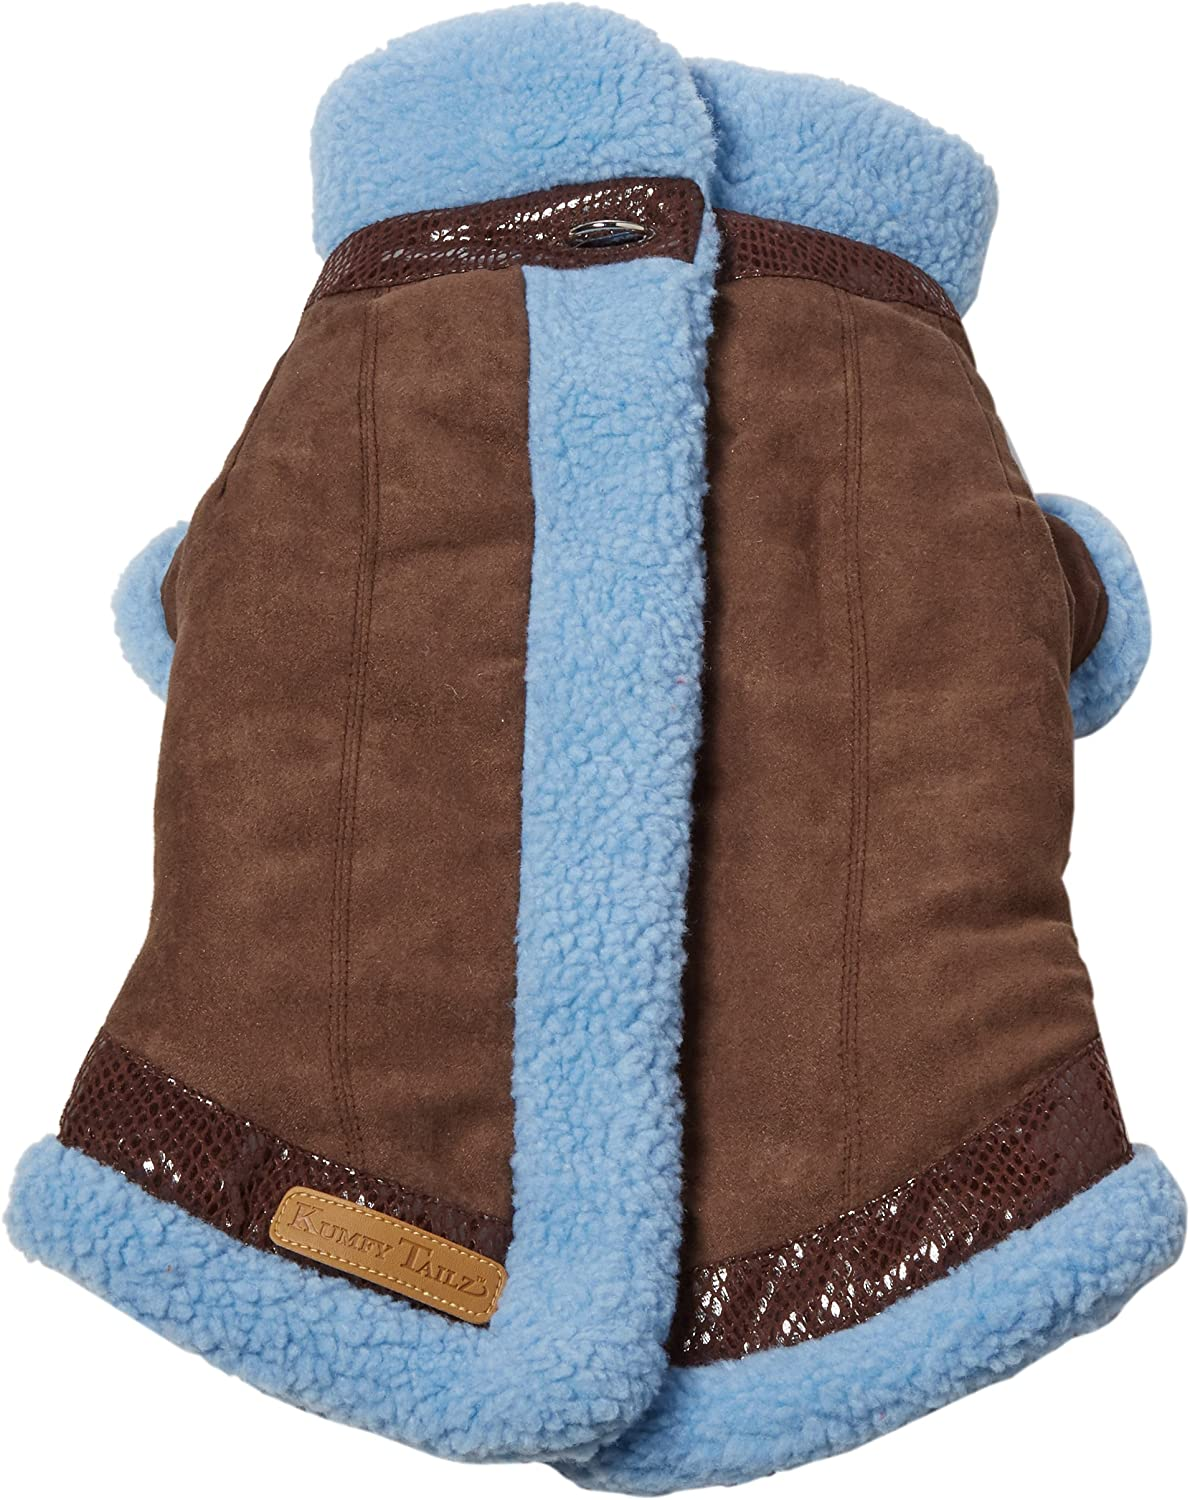 Kumfy Tailz Warming Winter Pet Coat, Small, Brown with bluee Lining